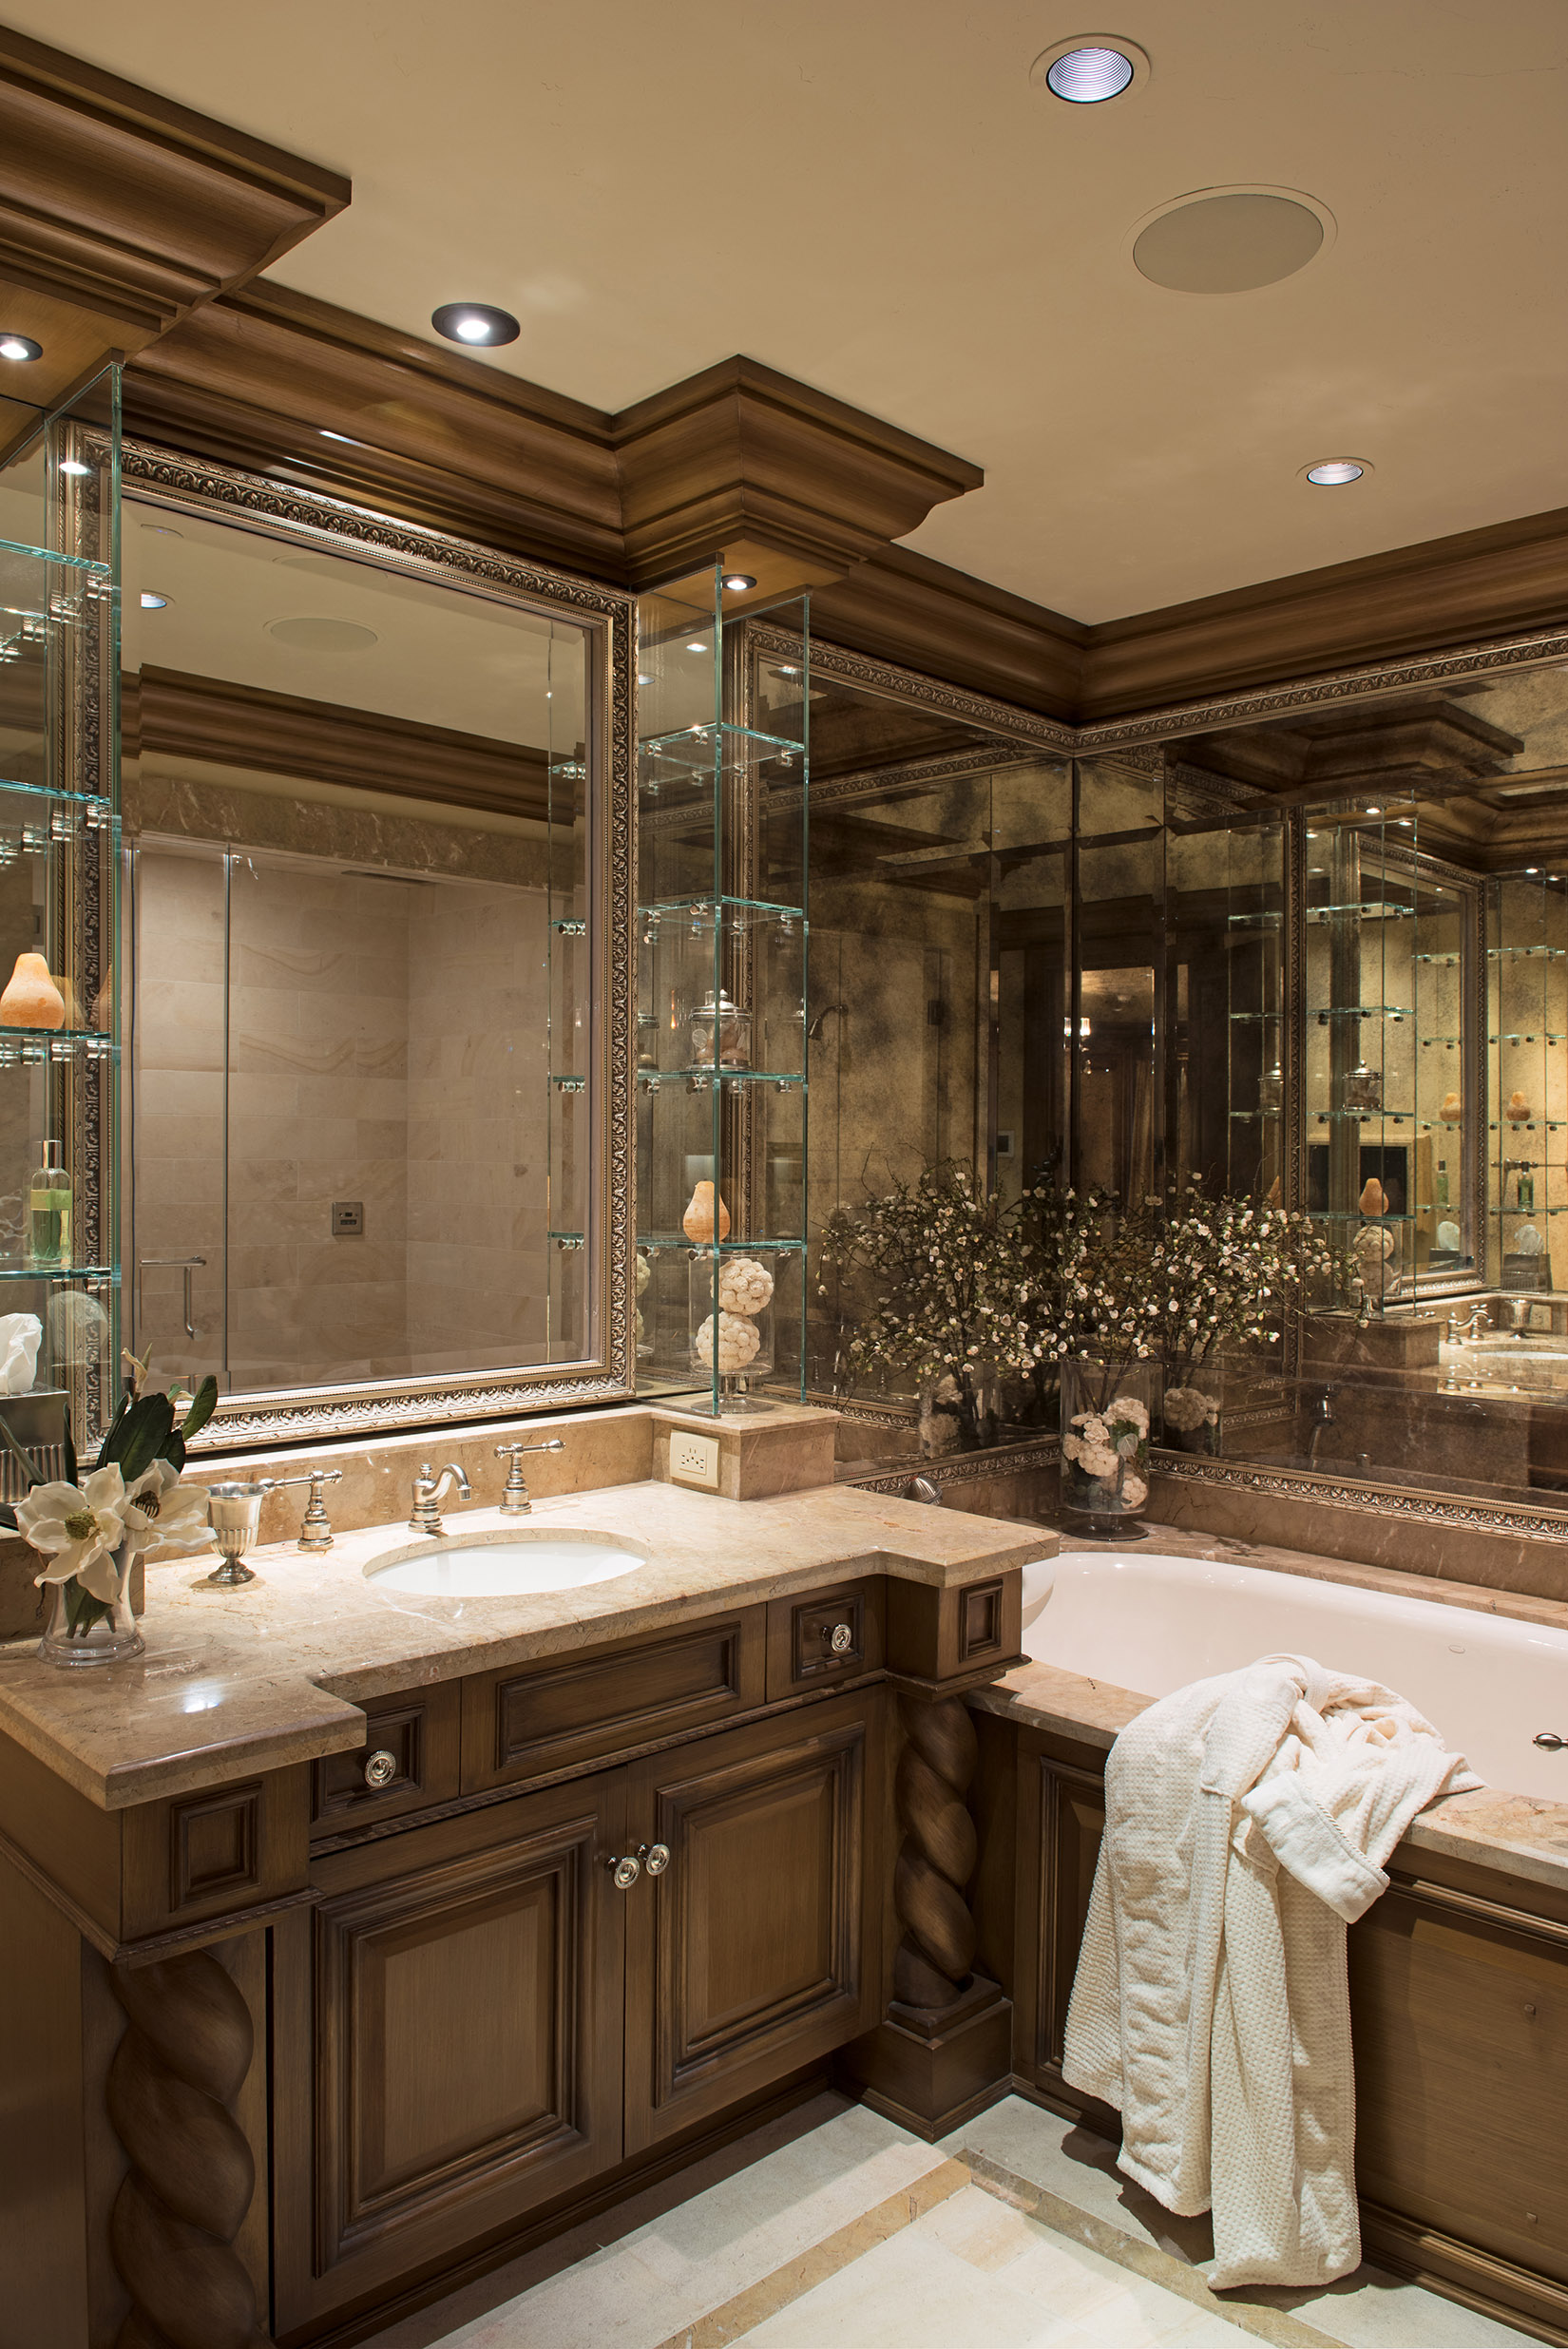 This junior guest suite bathroom is stunning with the mirrors, custom vanity, and glass shelving.